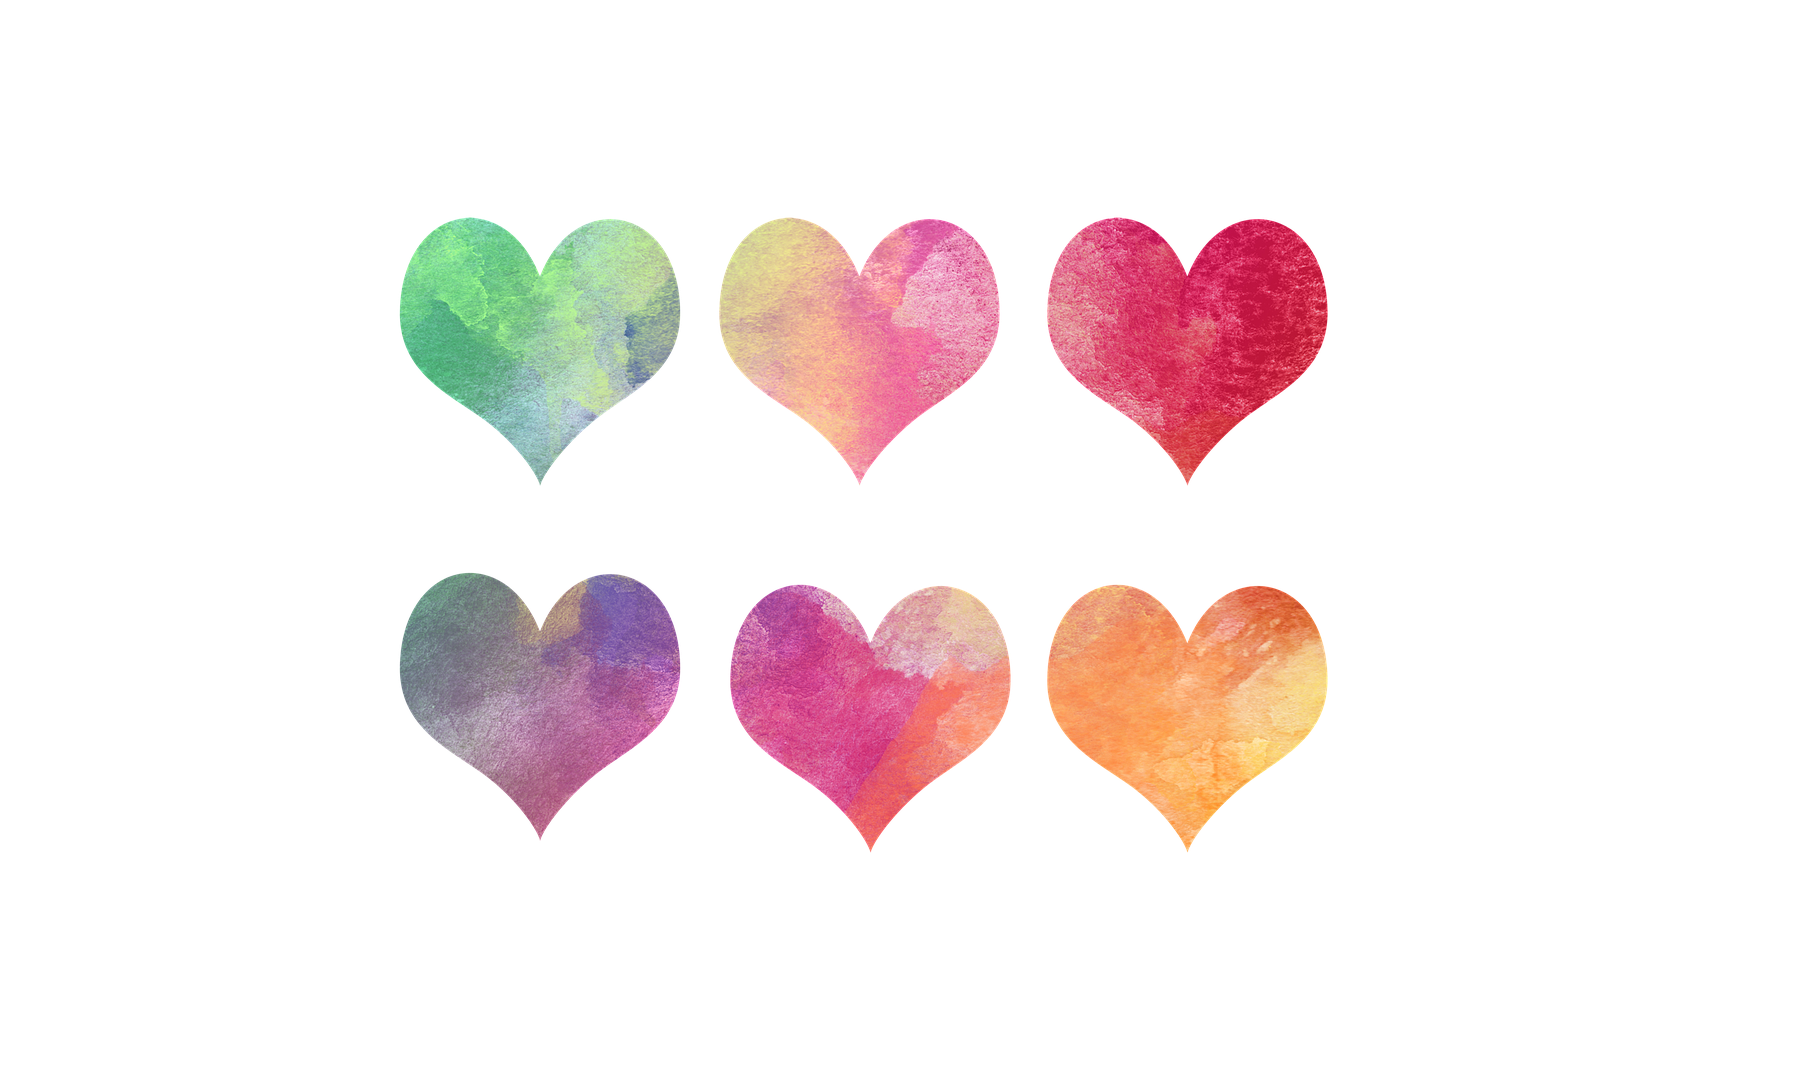 Hearts-Orange-Watercolor-Valentine-Pink-Colorful-1994273.png